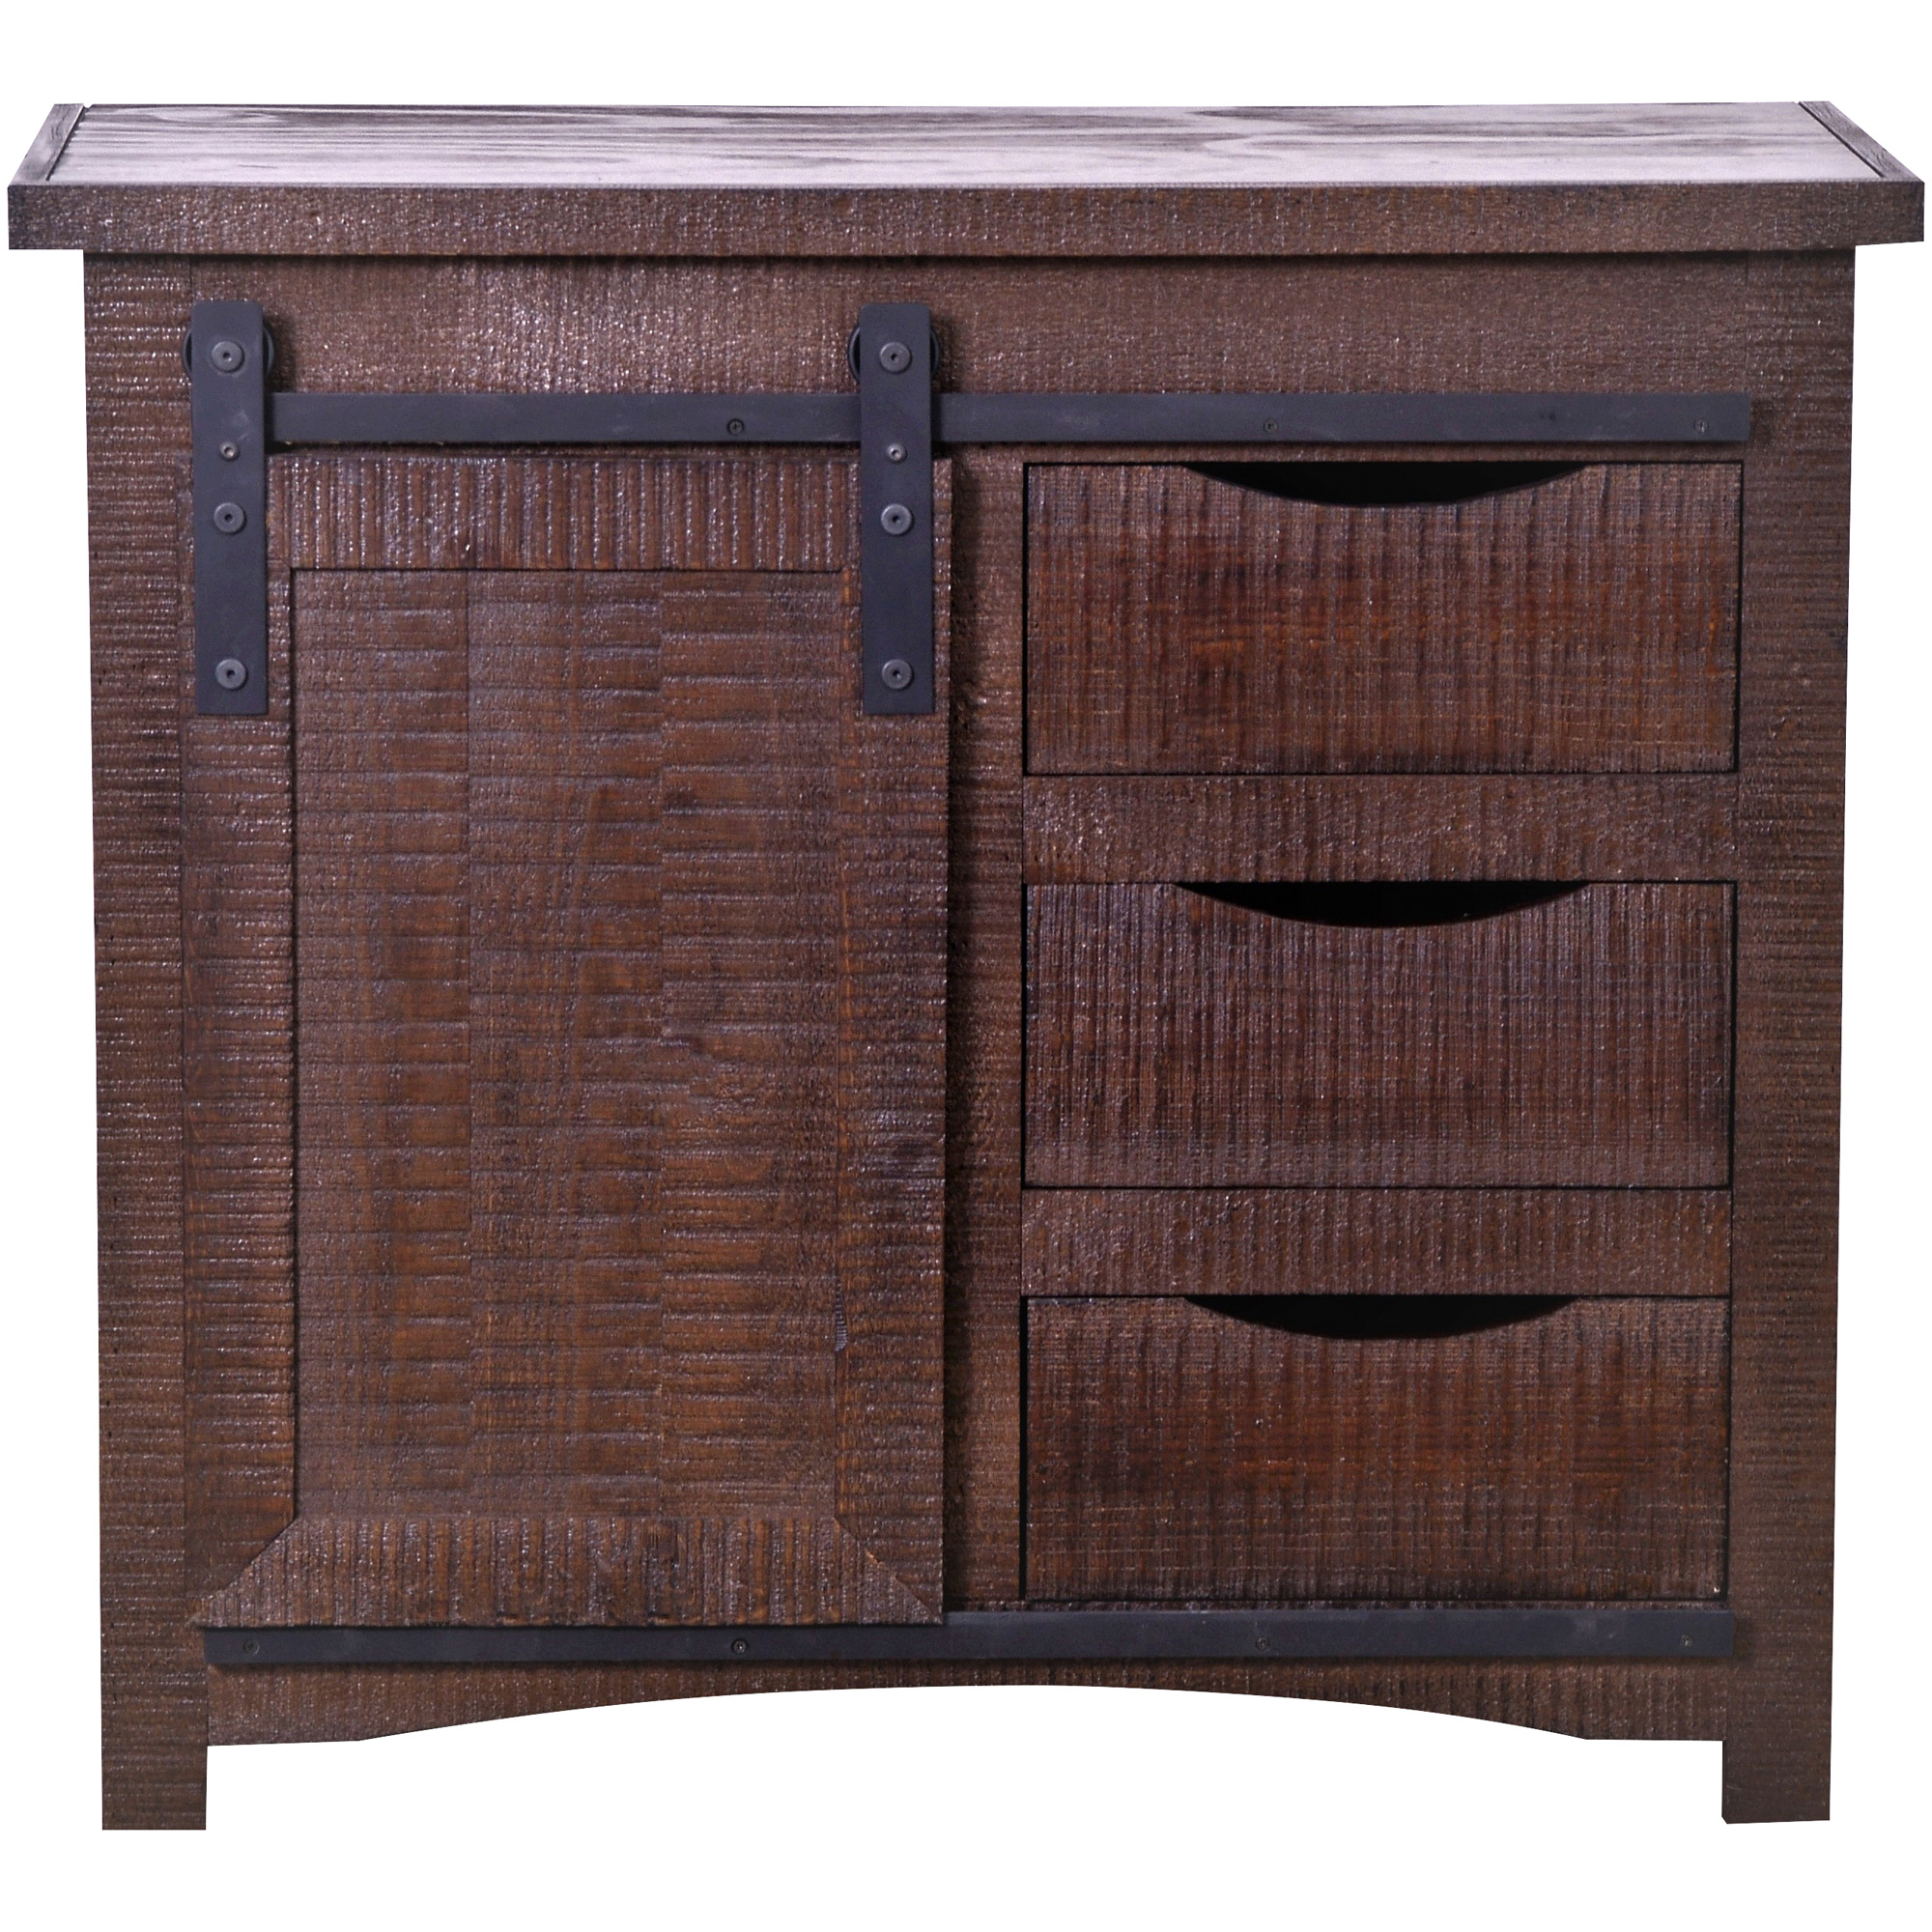 Kurio King | Barn Door Brown Accent Cabinet